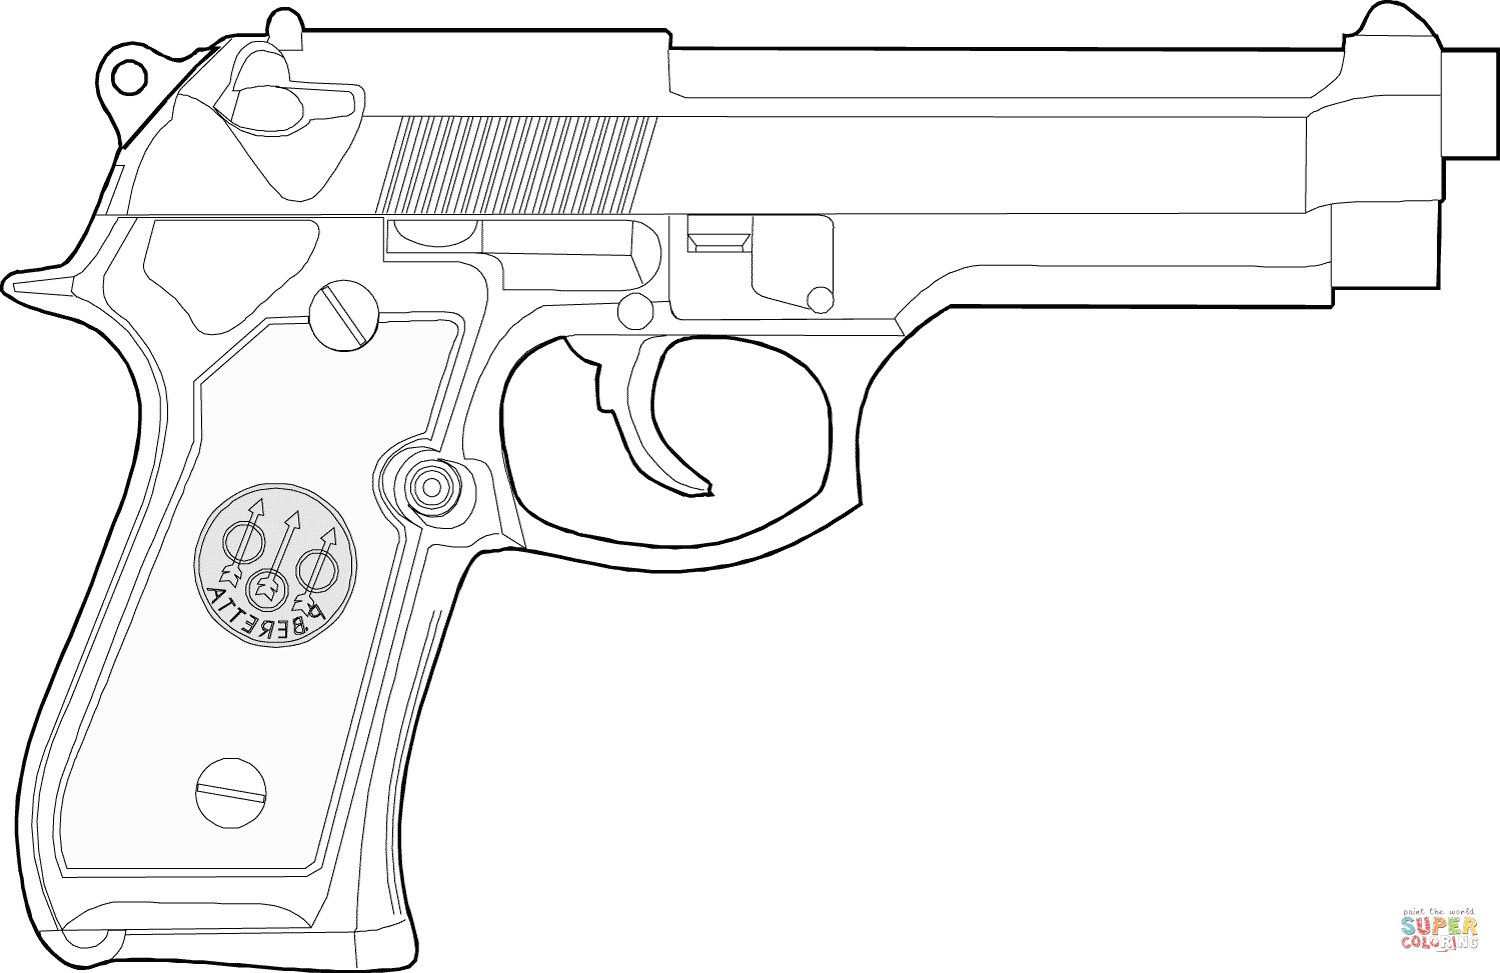 coloring printable gun pistol coloring pages to download and print for free coloring gun printable